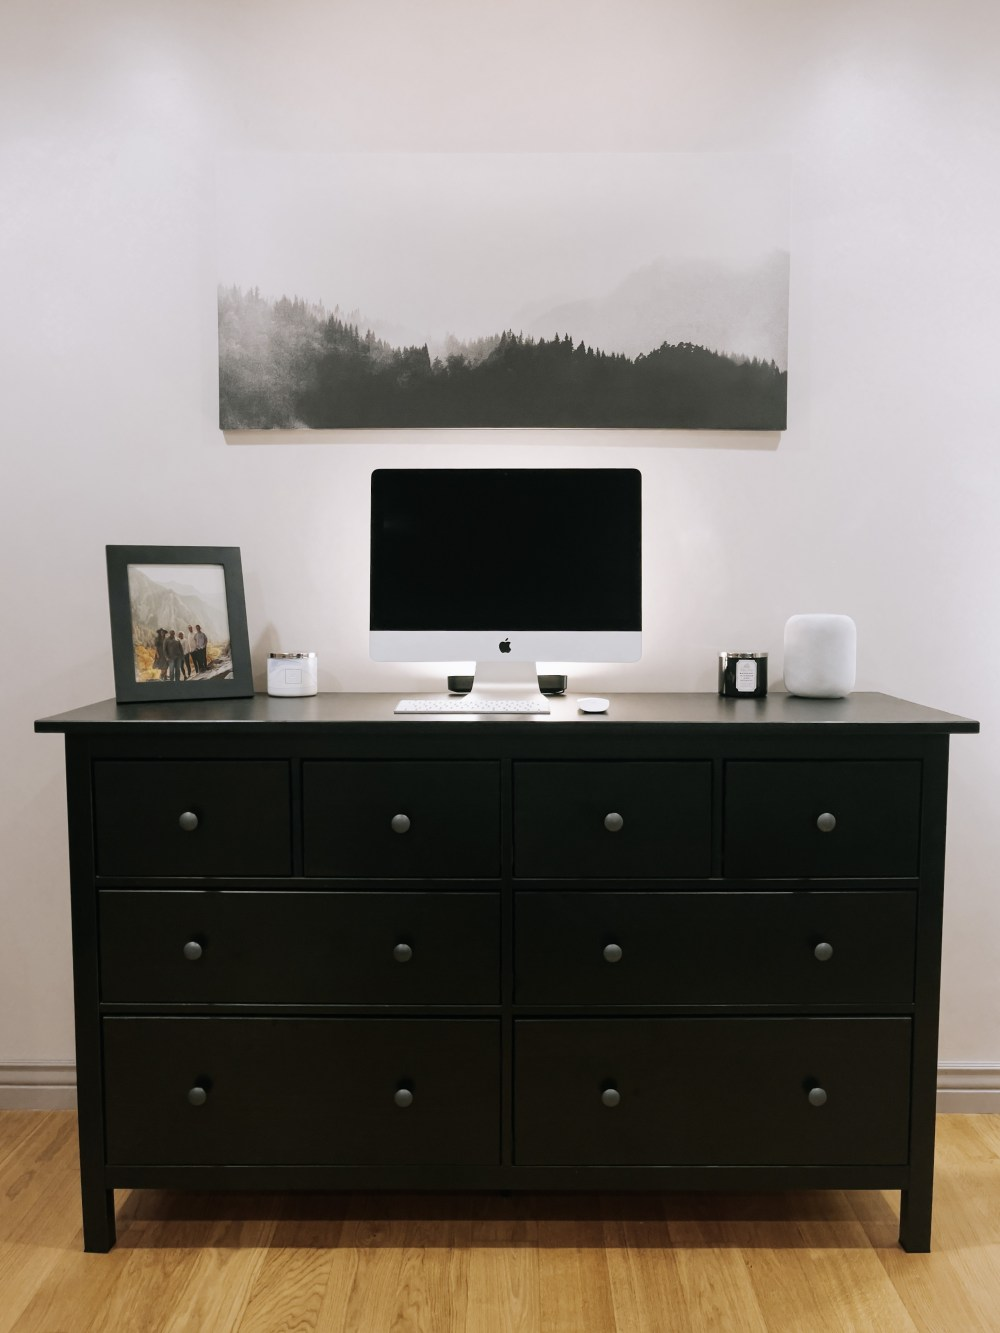 dresser pictures download free images